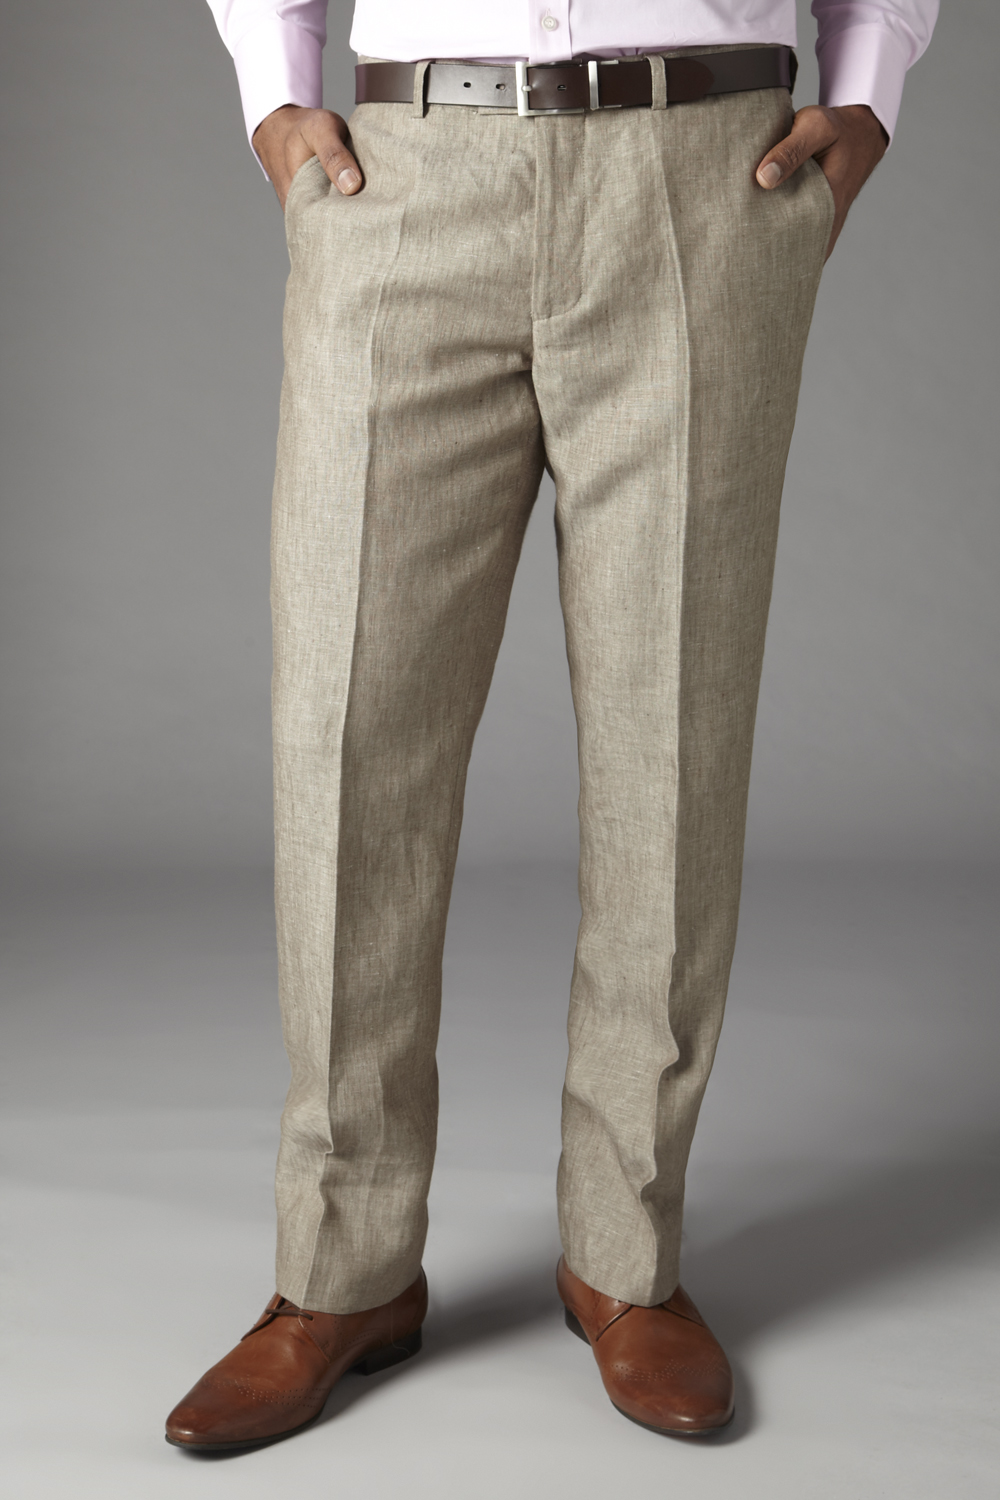 several of the benefits of linen trousers rppcvoq